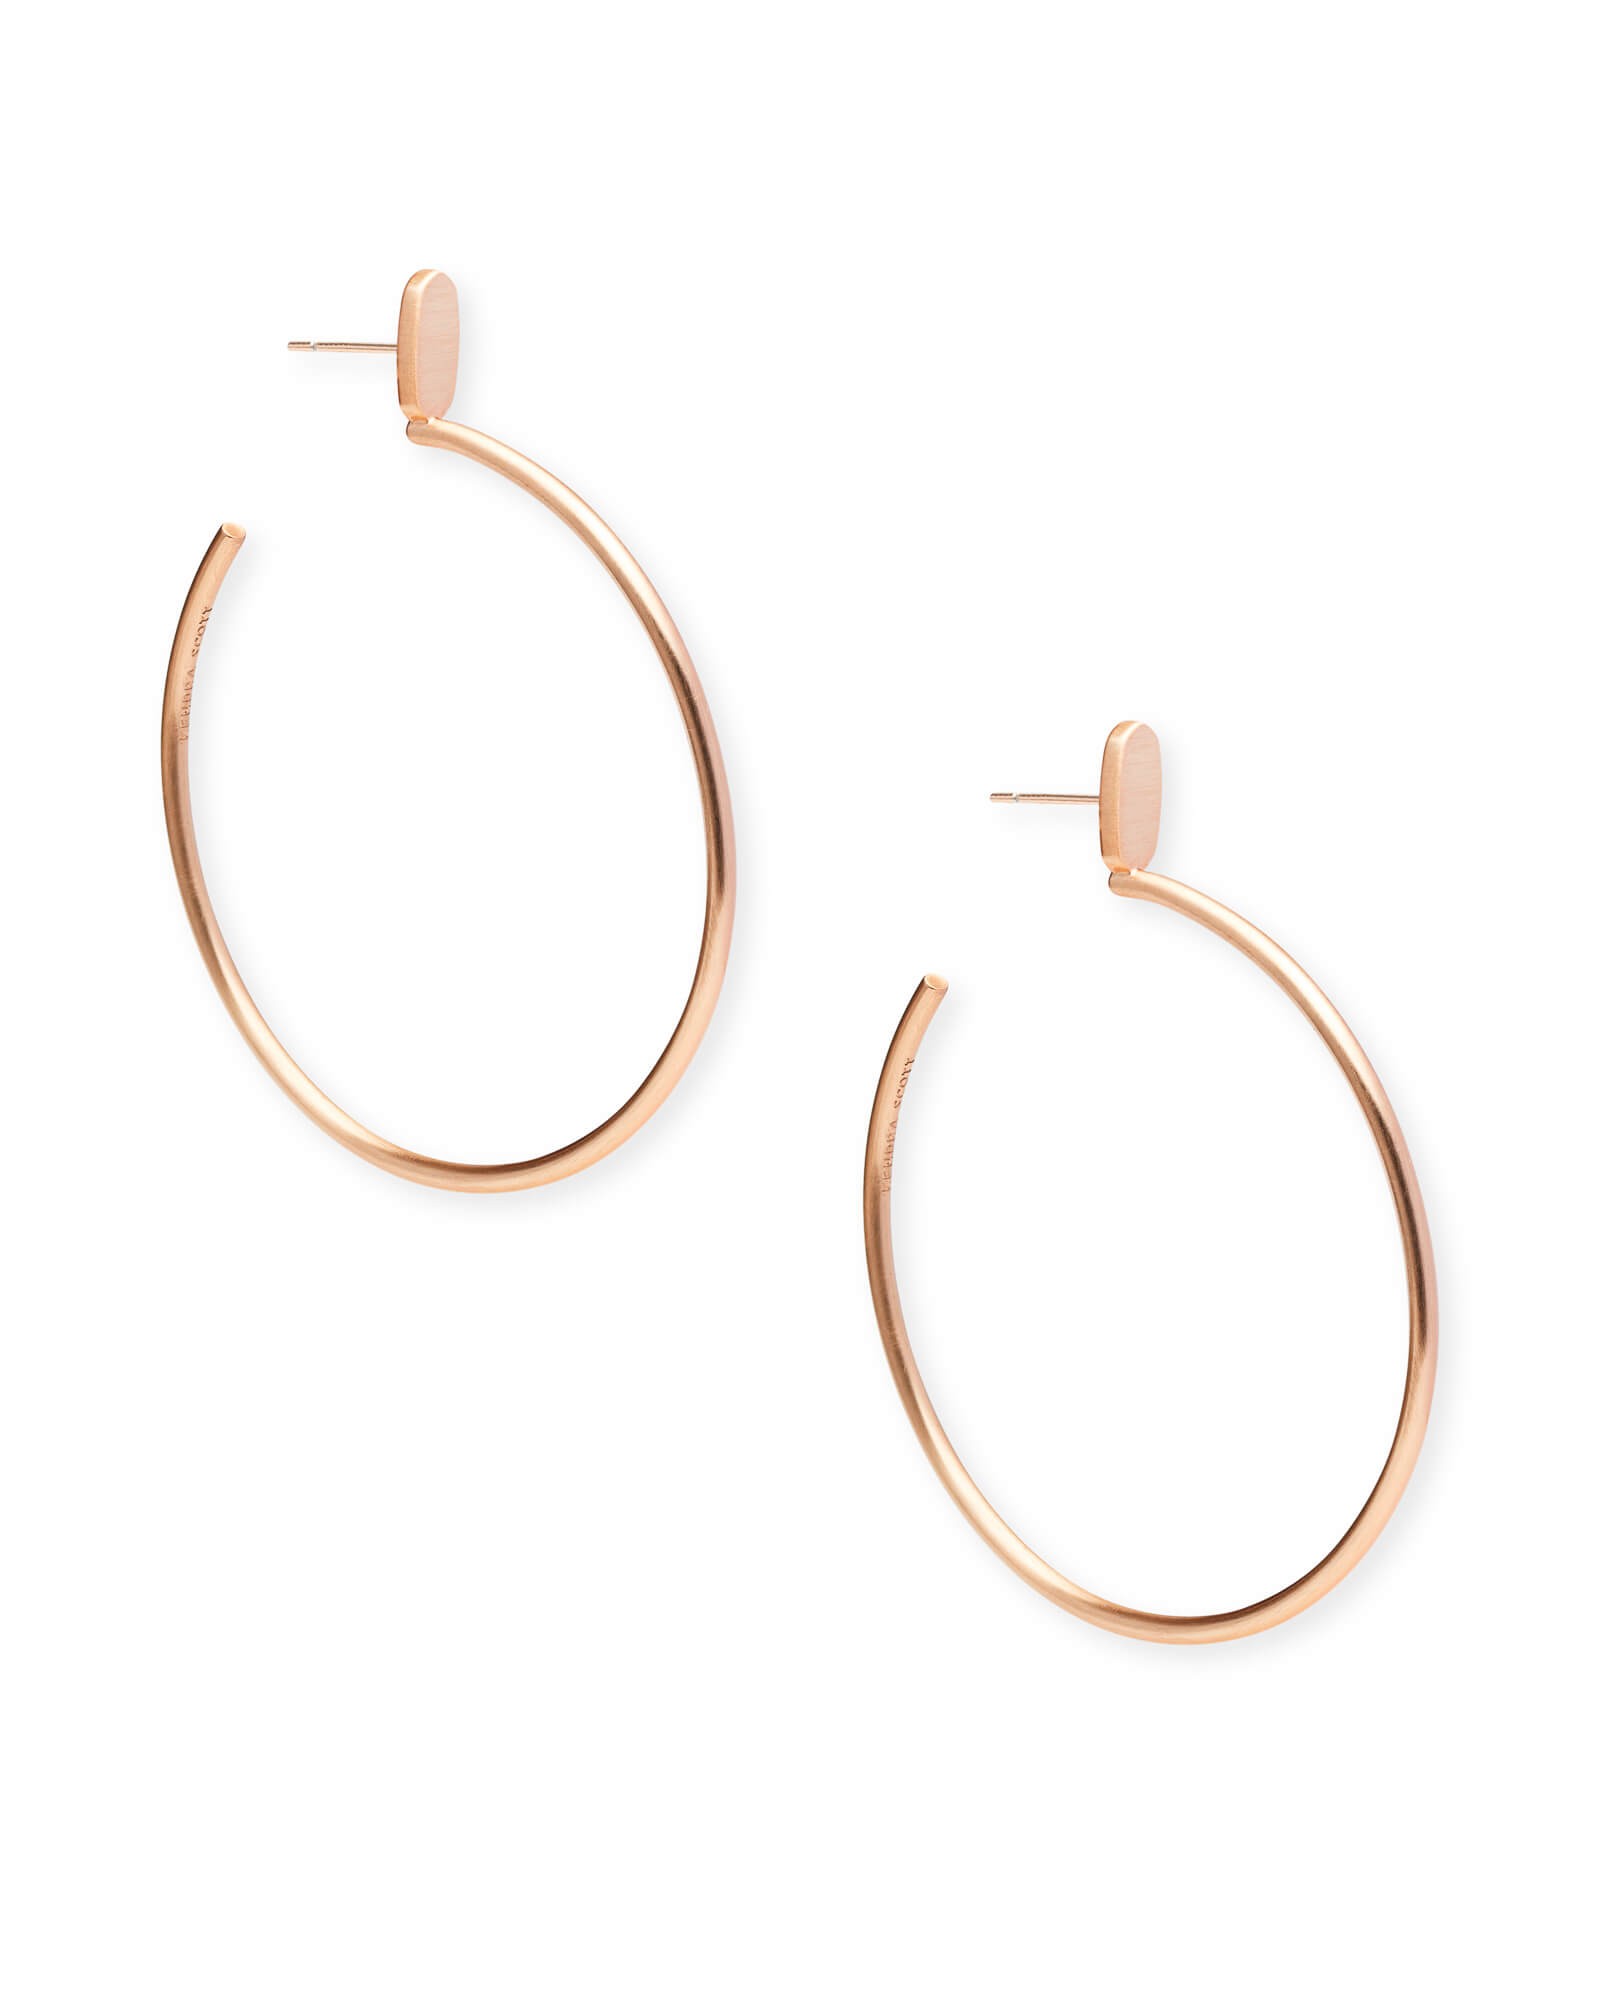 Pepper Hoop Earrings in Rose Gold